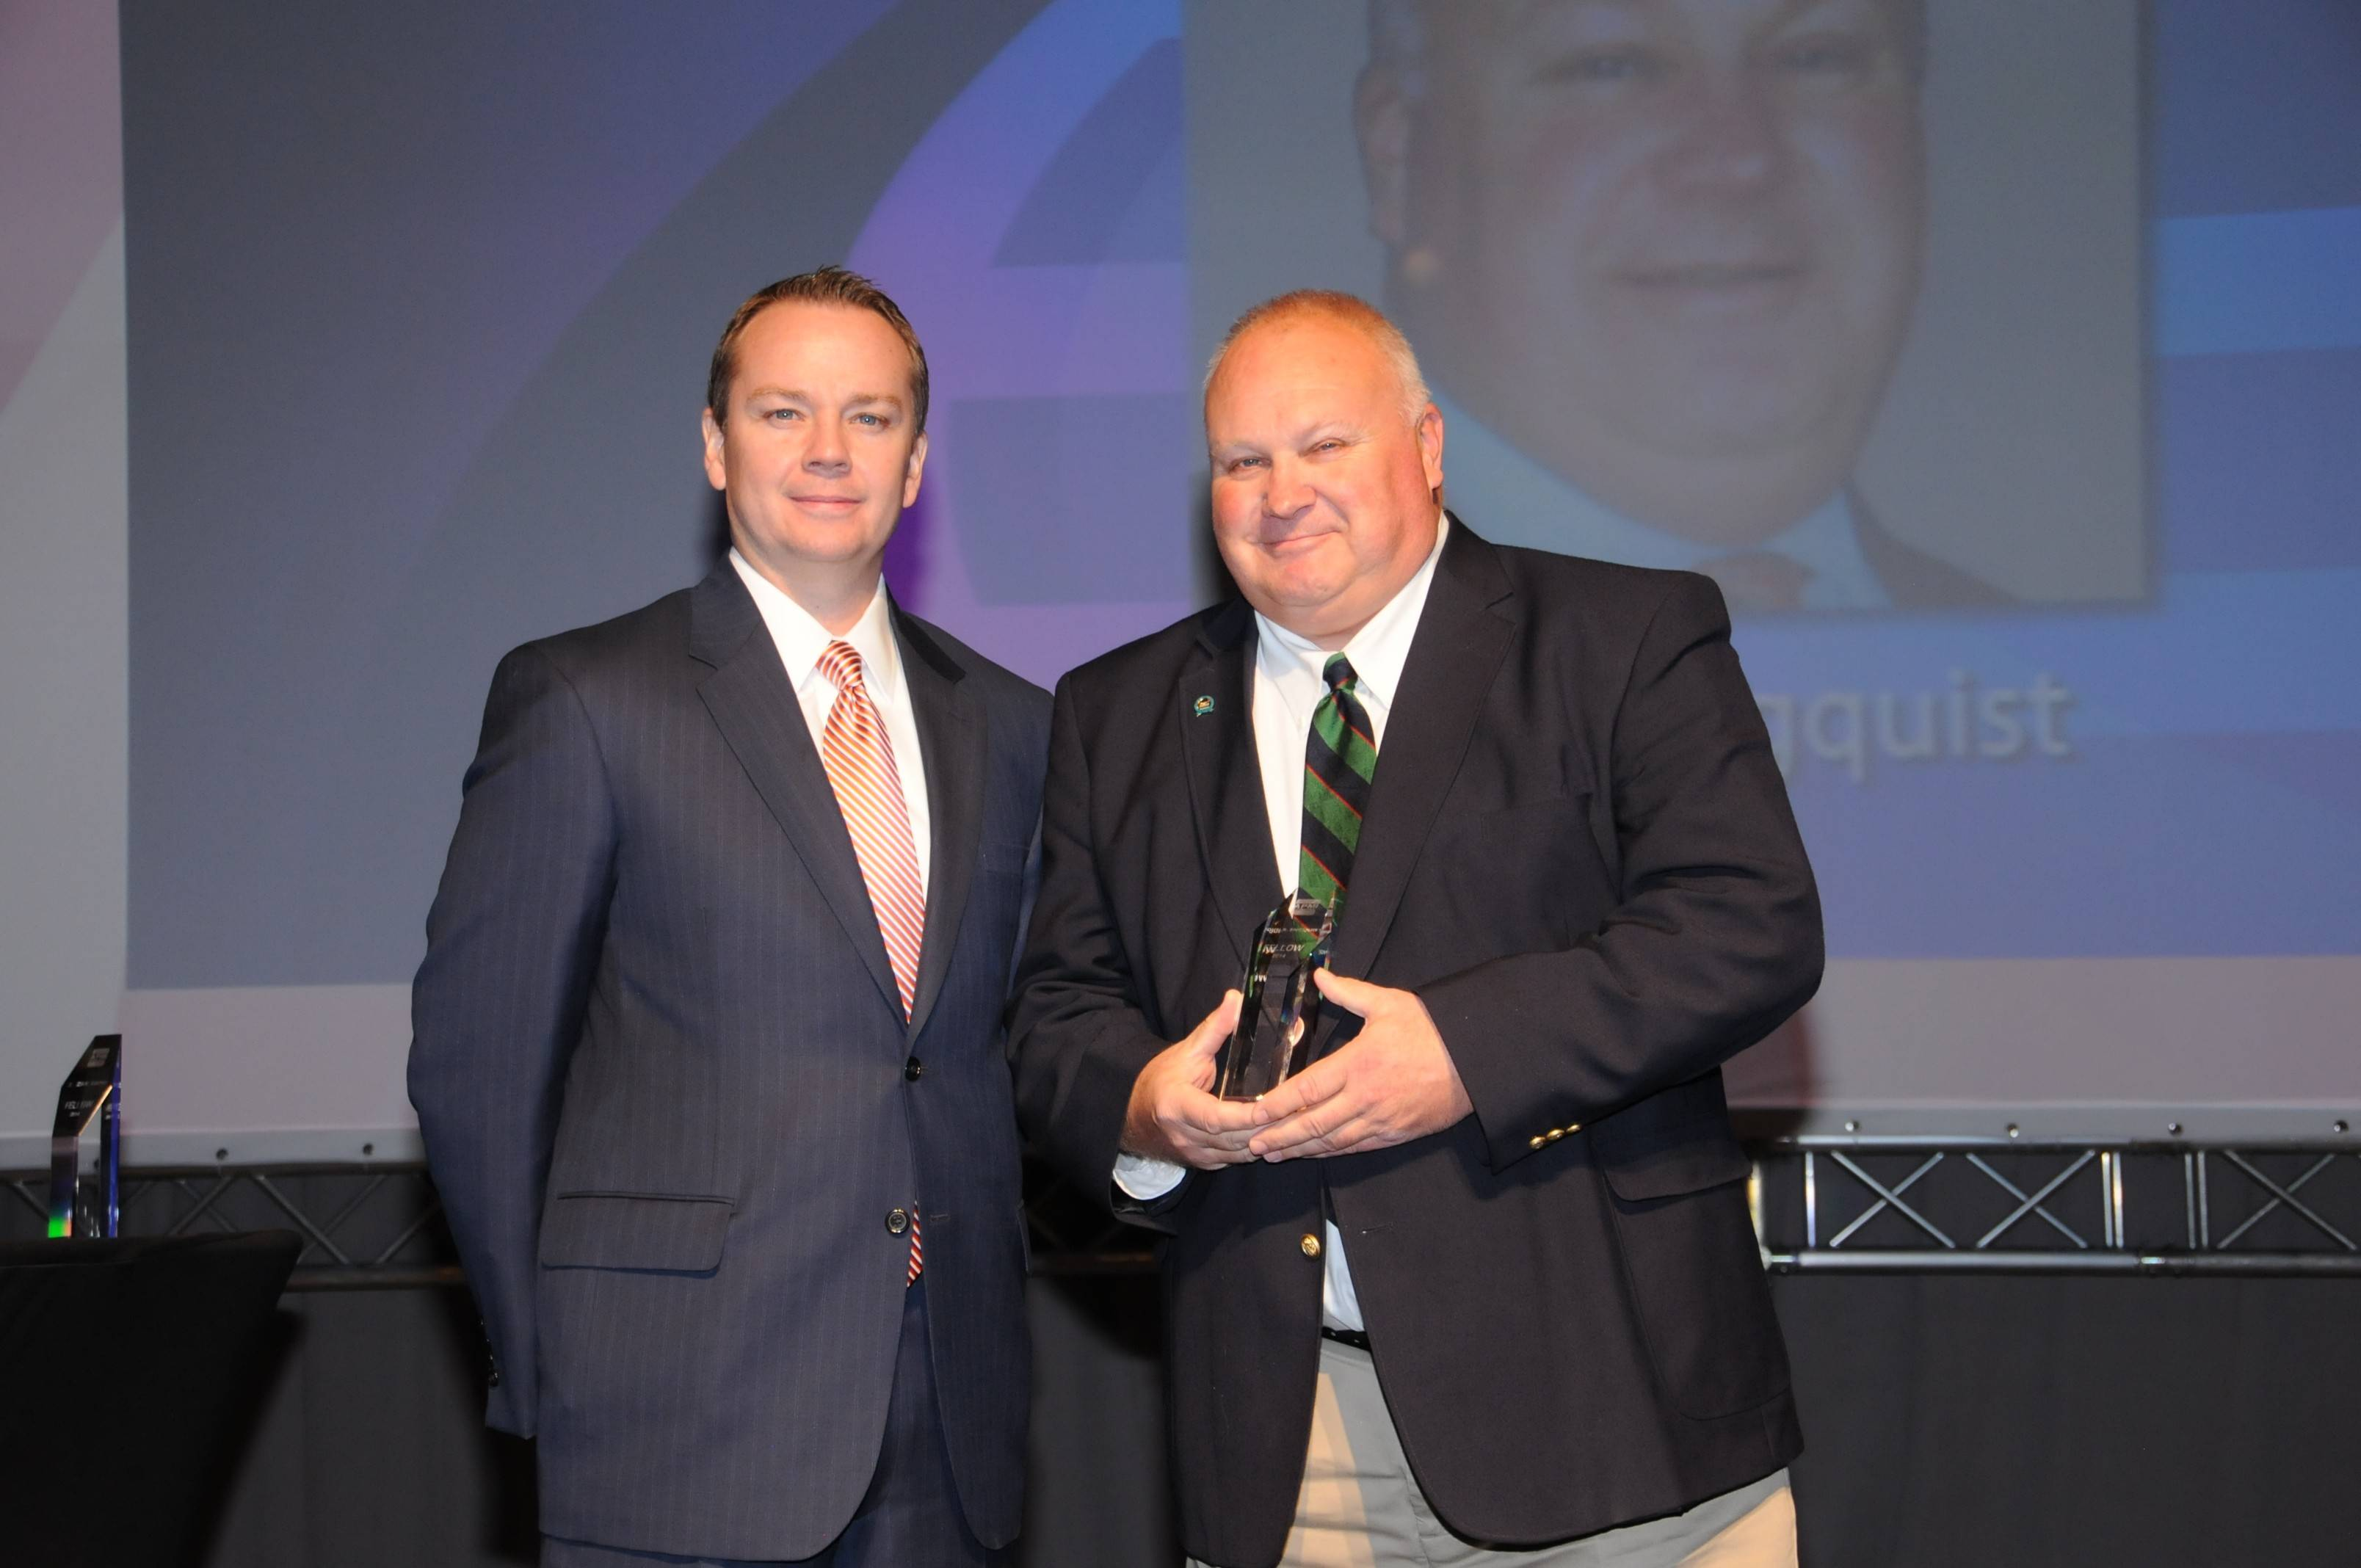 John Engquist, right, receives an award from APMI President Dean Howard.